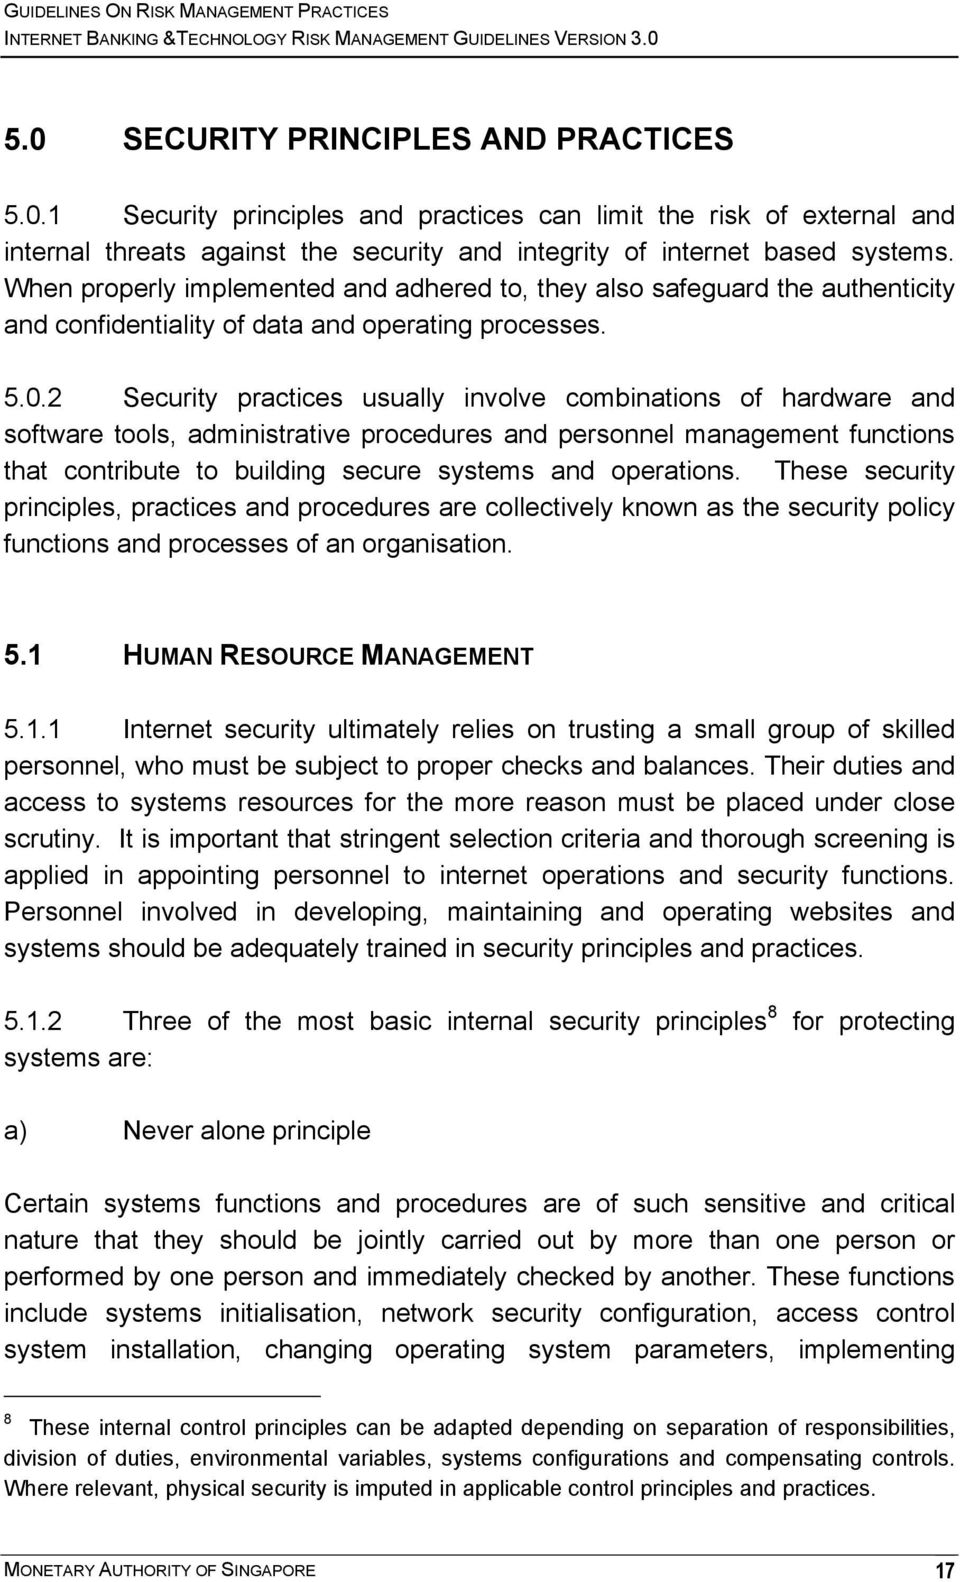 2 Security practices usually involve combinations of hardware and software tools, administrative procedures and personnel management functions that contribute to building secure systems and